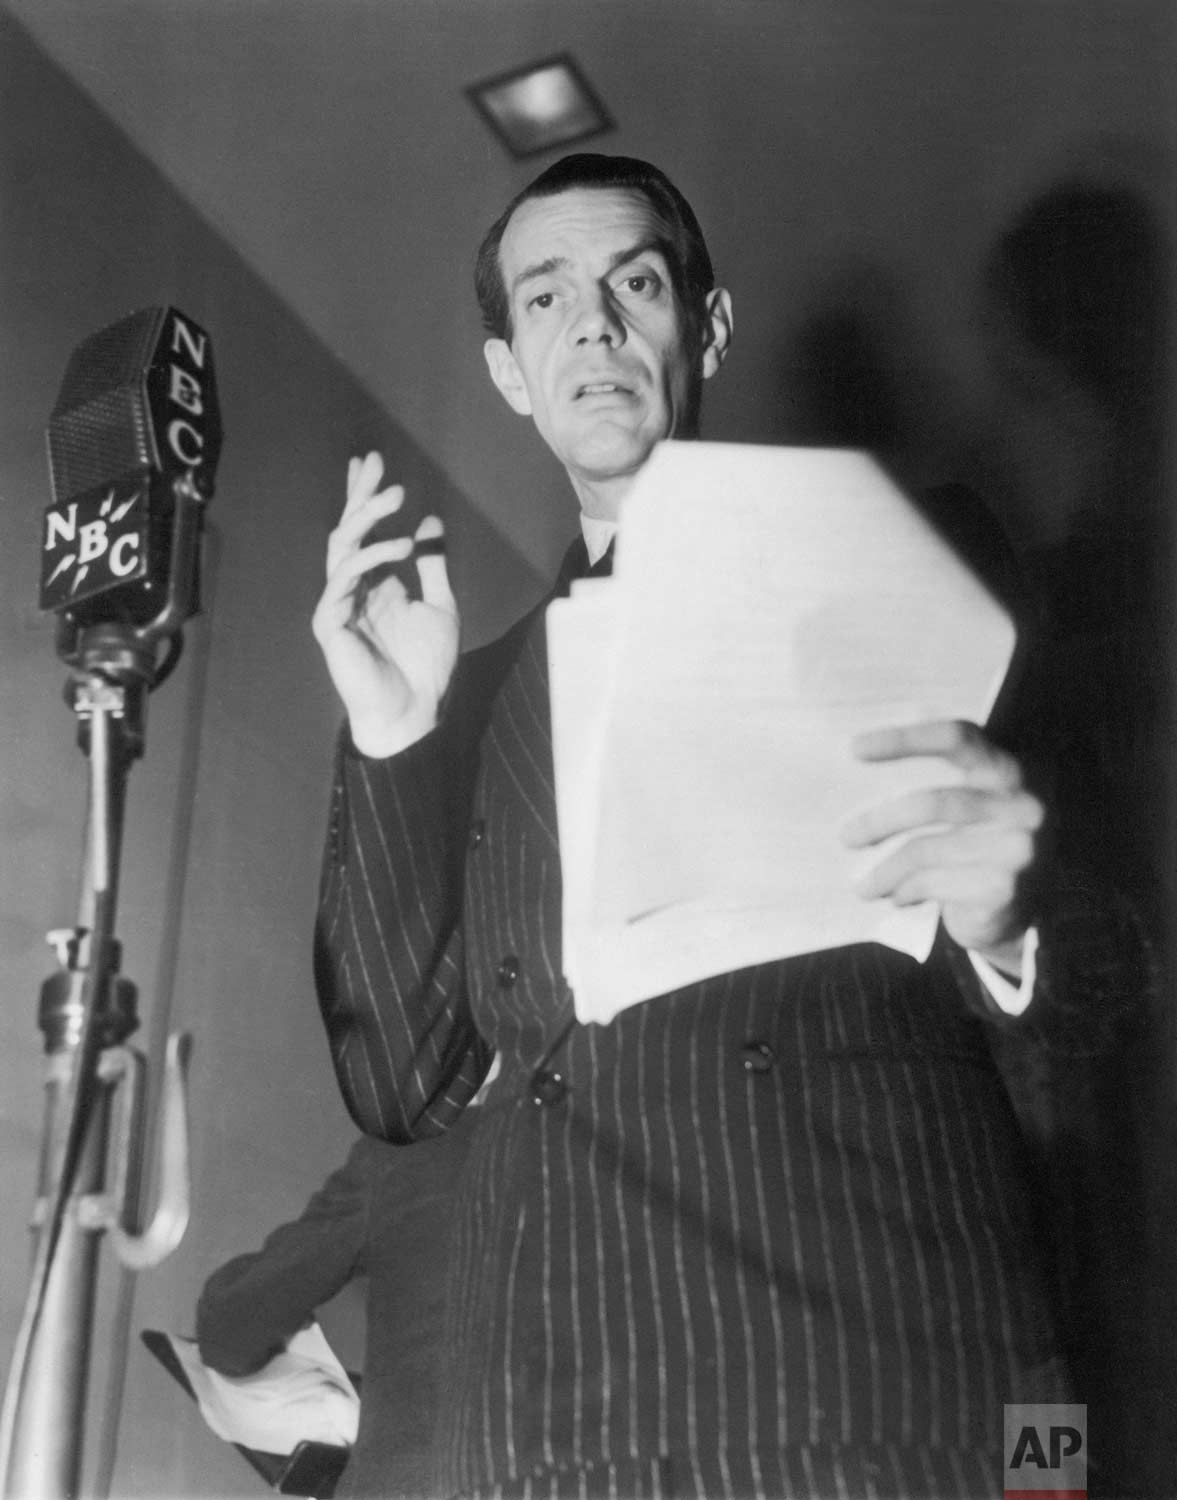 """Actor Raymond Massey performs as Abraham Lincoln for the radio play, """"Ninety Years of News"""", a dramatization by the National Broadcasting Company (NBC), celebrating what was then believed to be AP's 90th anniversary, December 25, 1938 in New York. (AP Photo)"""